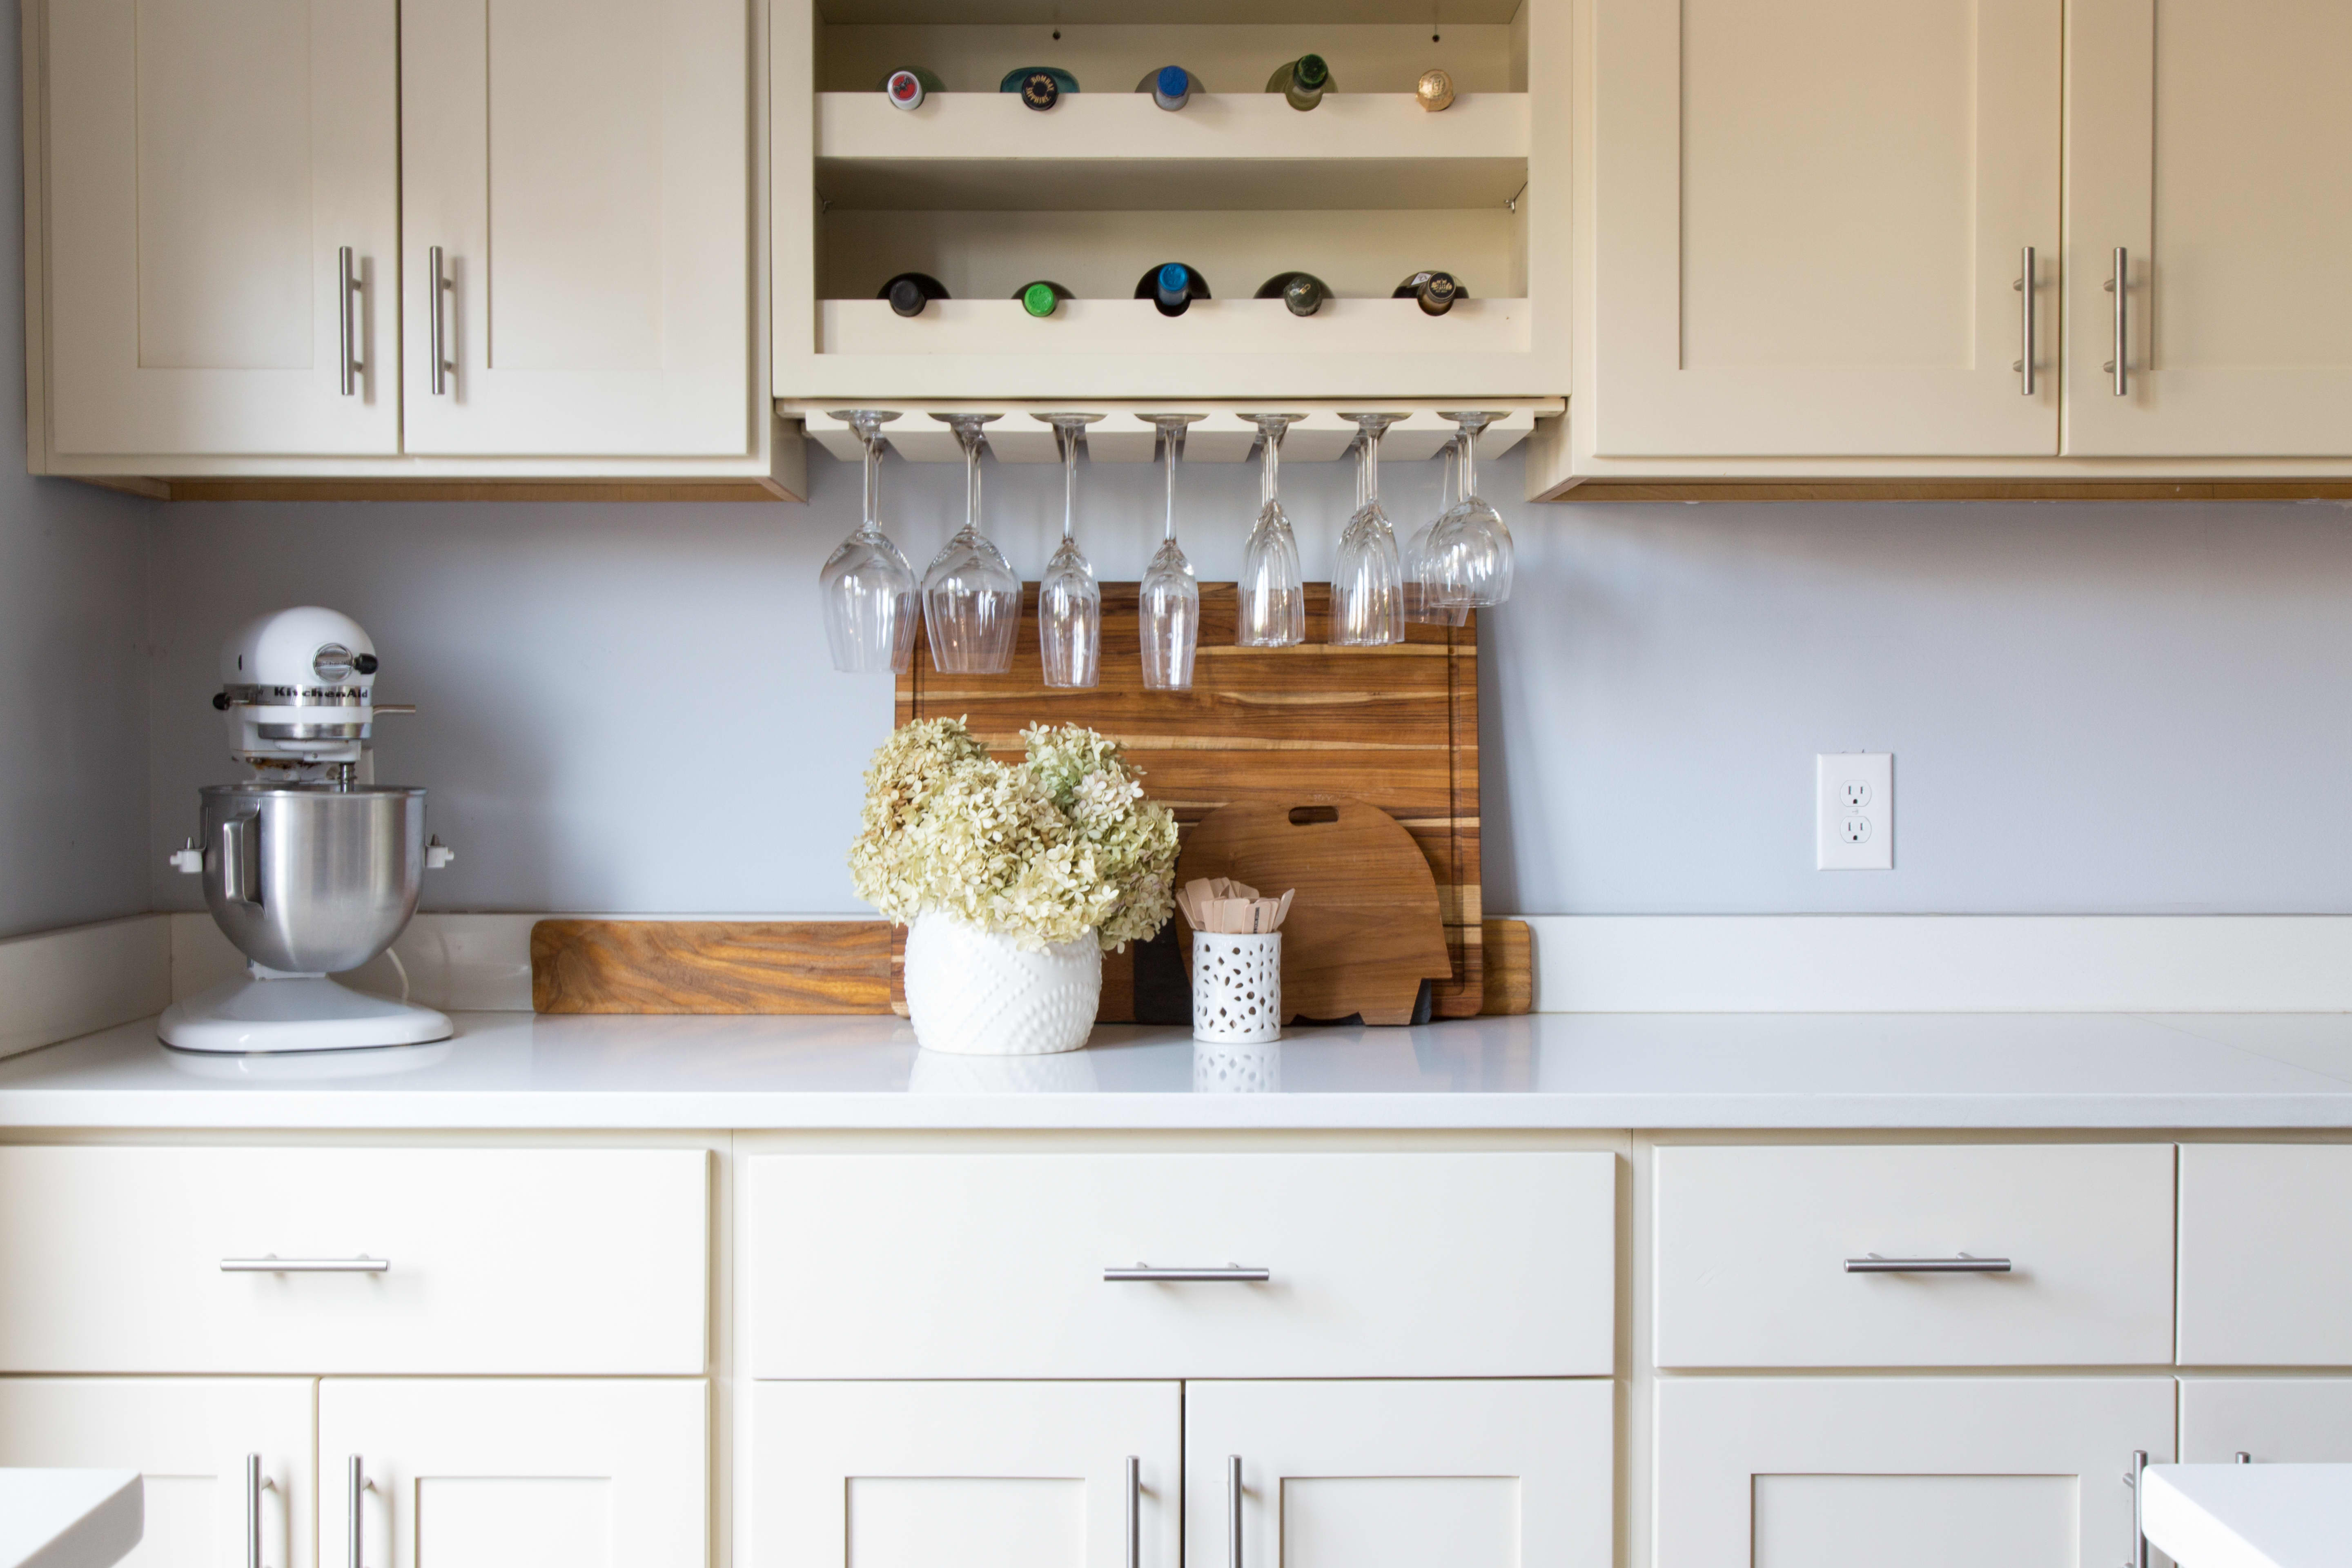 The 10 Commandments of a Clutter-Free Kitchen | Kitchn Kitchen Closet Pantry With Drawers on office with closet, pull out broom closet, bedroom with closet, hallway with closet, mudroom with closet, pantry broom closet, kitchen closet organizers, garage with closet, dining room with closet, beautiful closet, utility room with closet, kitchen maid, custom pantry closet, kitchen cabinets with closet, living room with closet, kitchen wine bar, men's walk-in closet, custom cabinet island for closet, refrigerator with closet, bay window with closet,